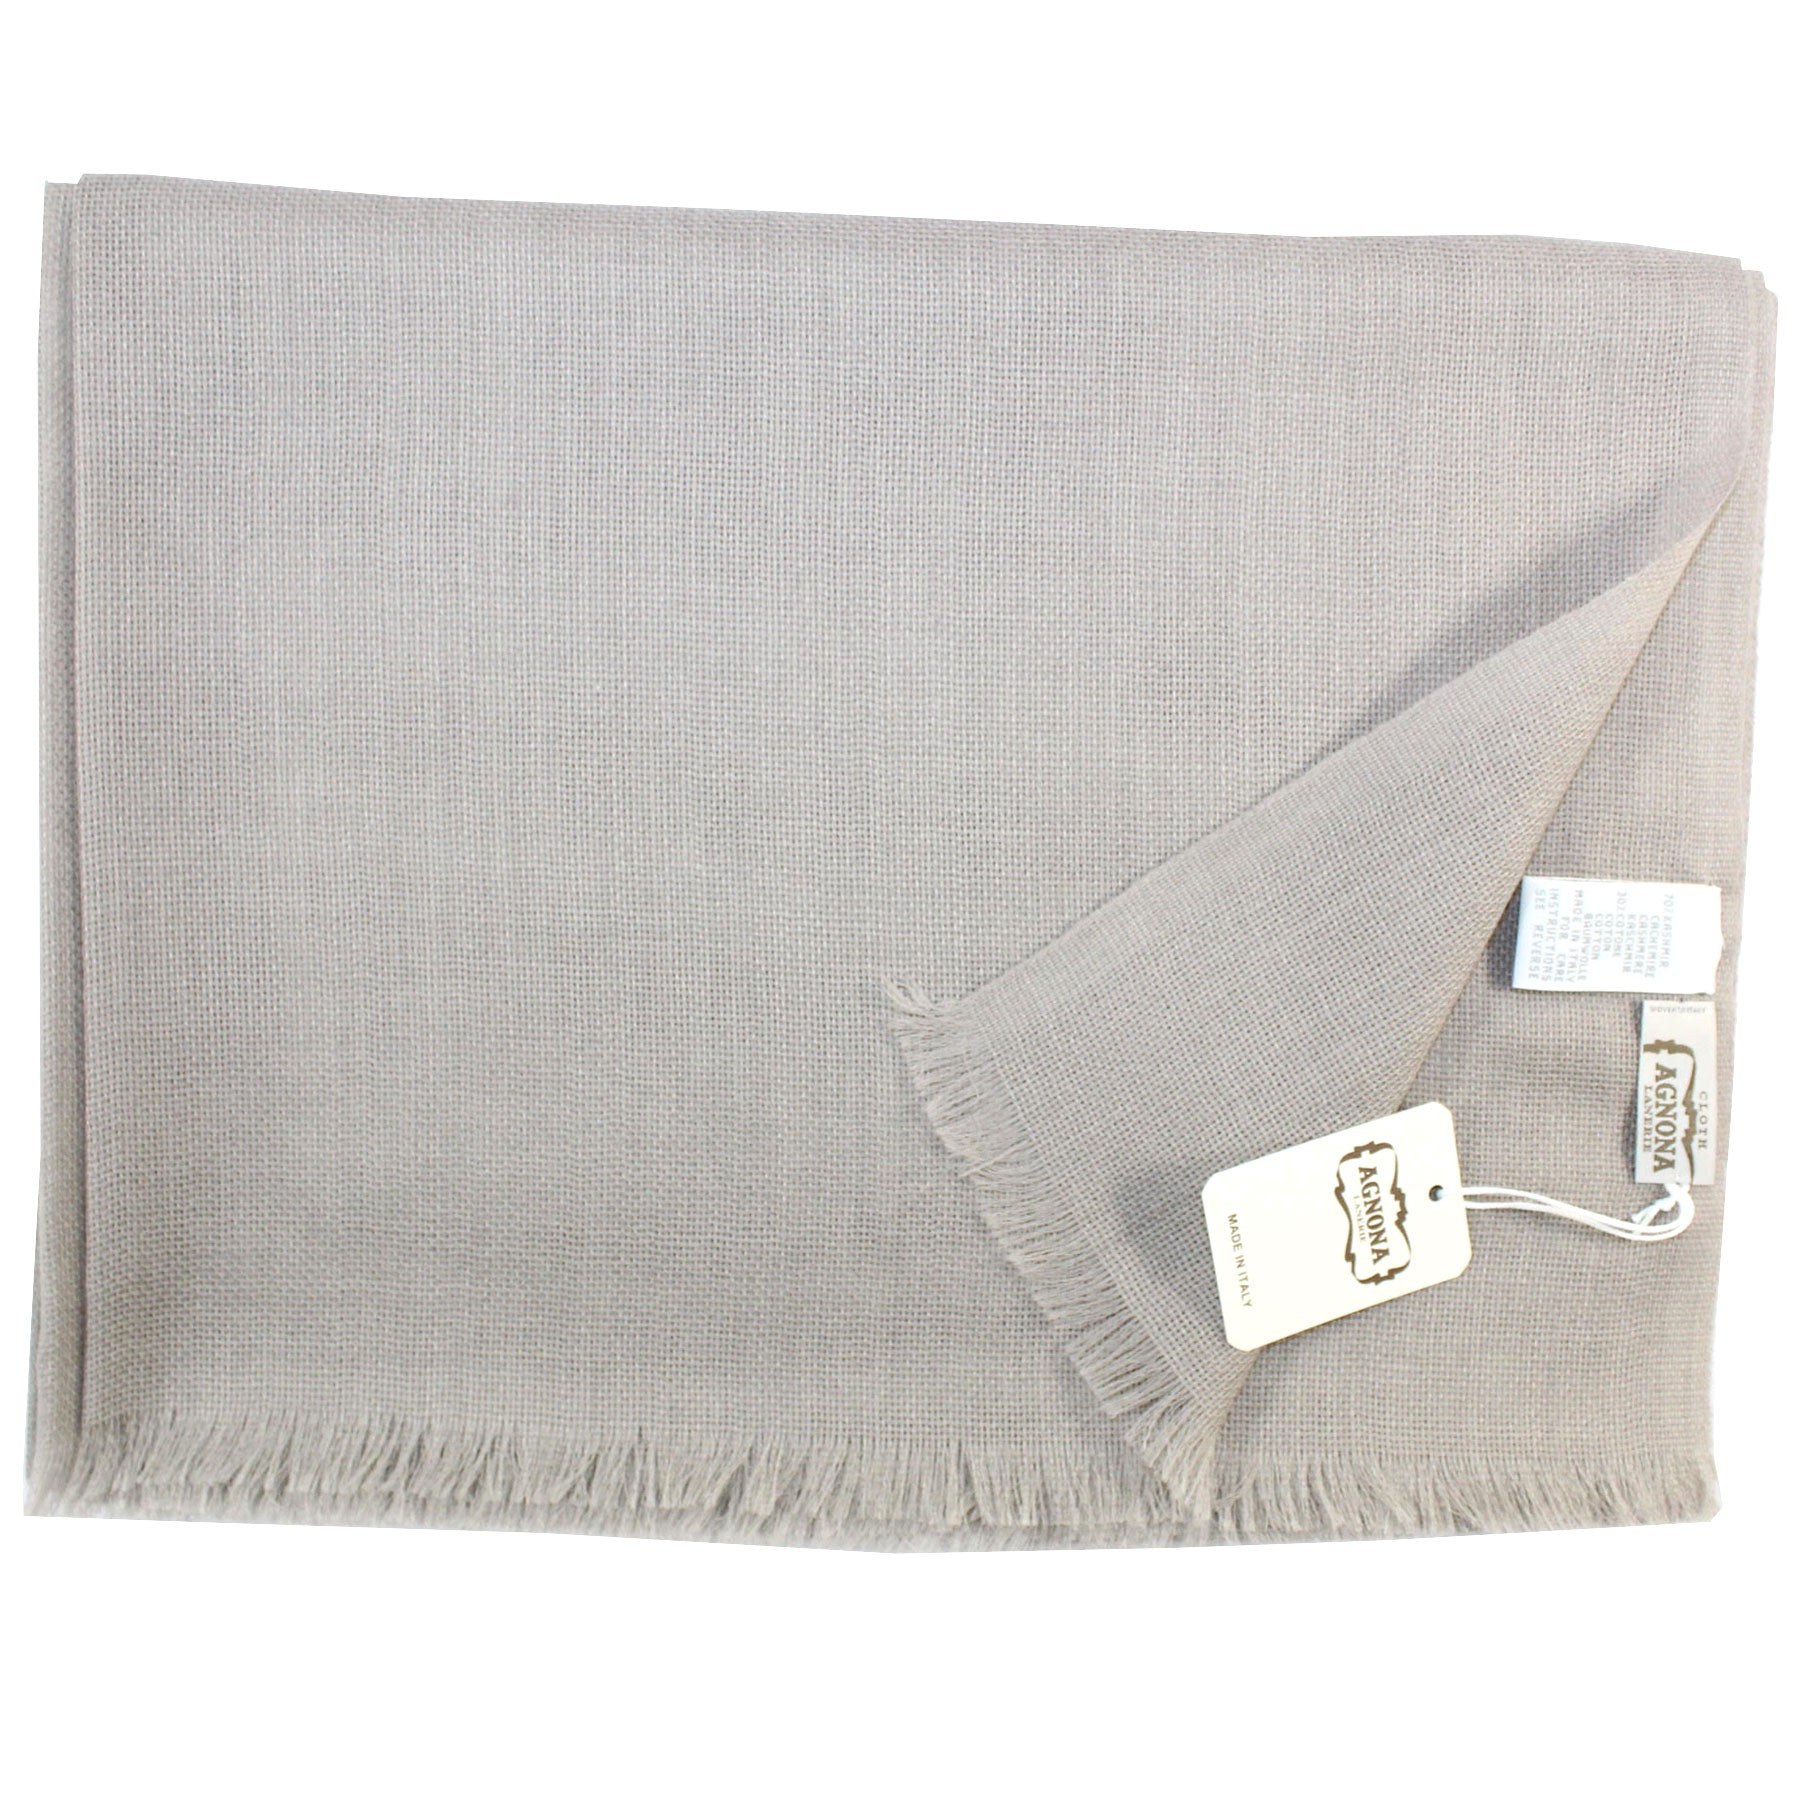 Agnona Scarf Taupe Solid - Cashmere Cotton Shawl